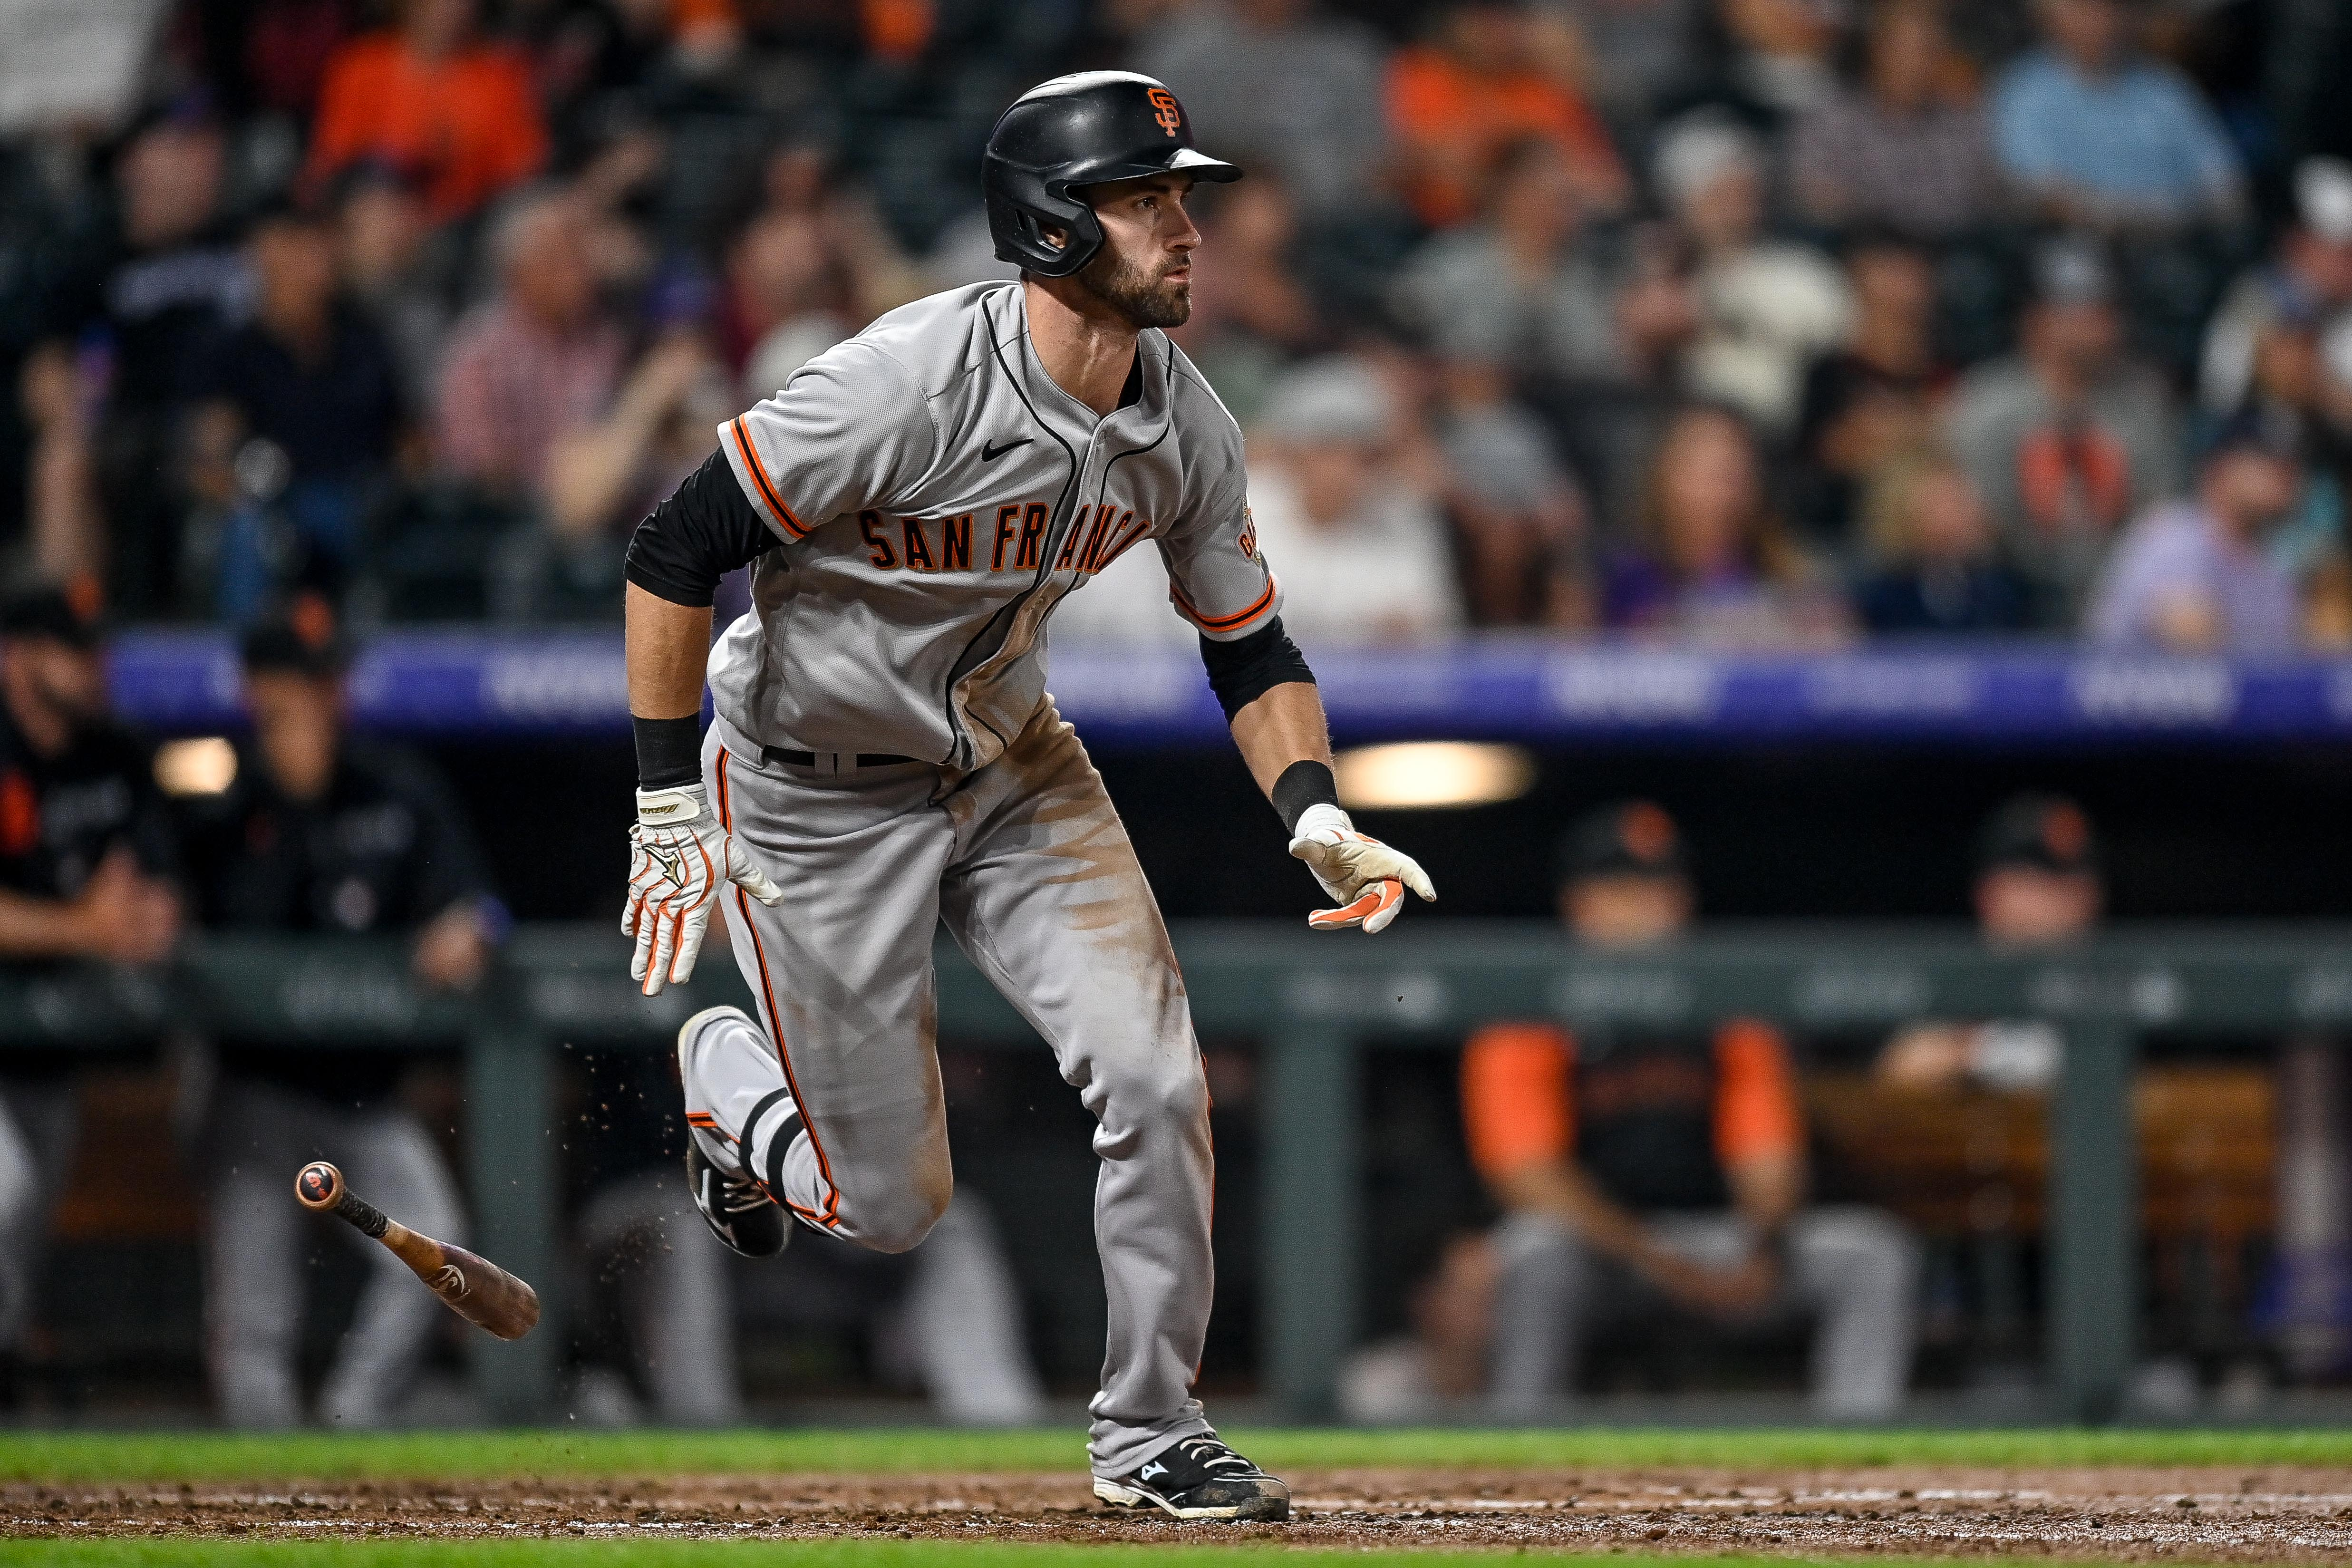 Steven Duggar #6 of the San Francisco Giants follows through after hitting a fourth inning double against the Colorado Rockies at Coors Field on September 7, 2021 in Denver, Colorado.